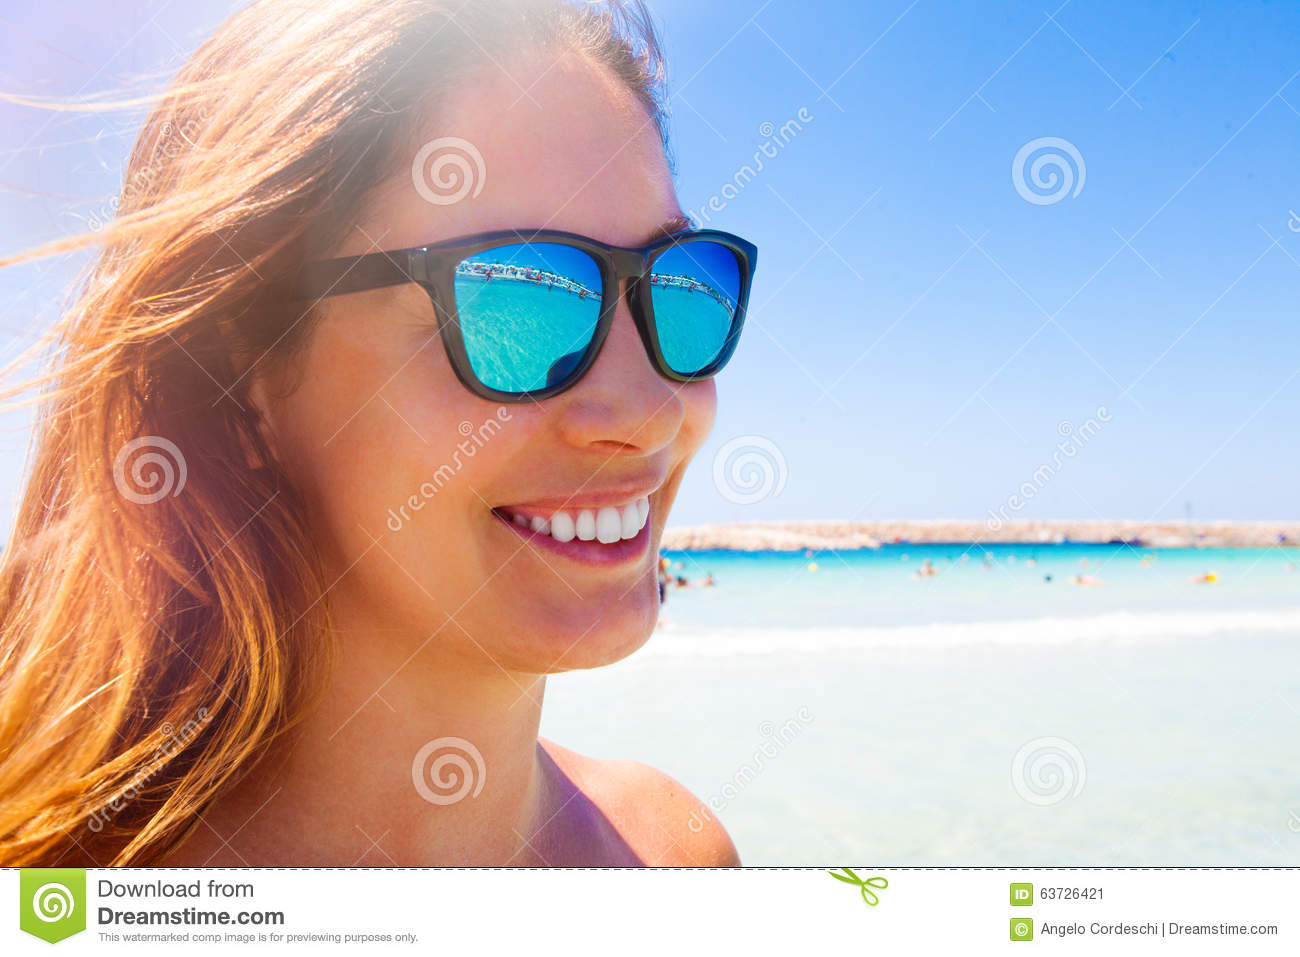 9db87248c15 Young and beautiful smiling woman with sunglasses. Blue sea in the  background. Beach holiday. Concept of fun and vacation. Sunbeam top